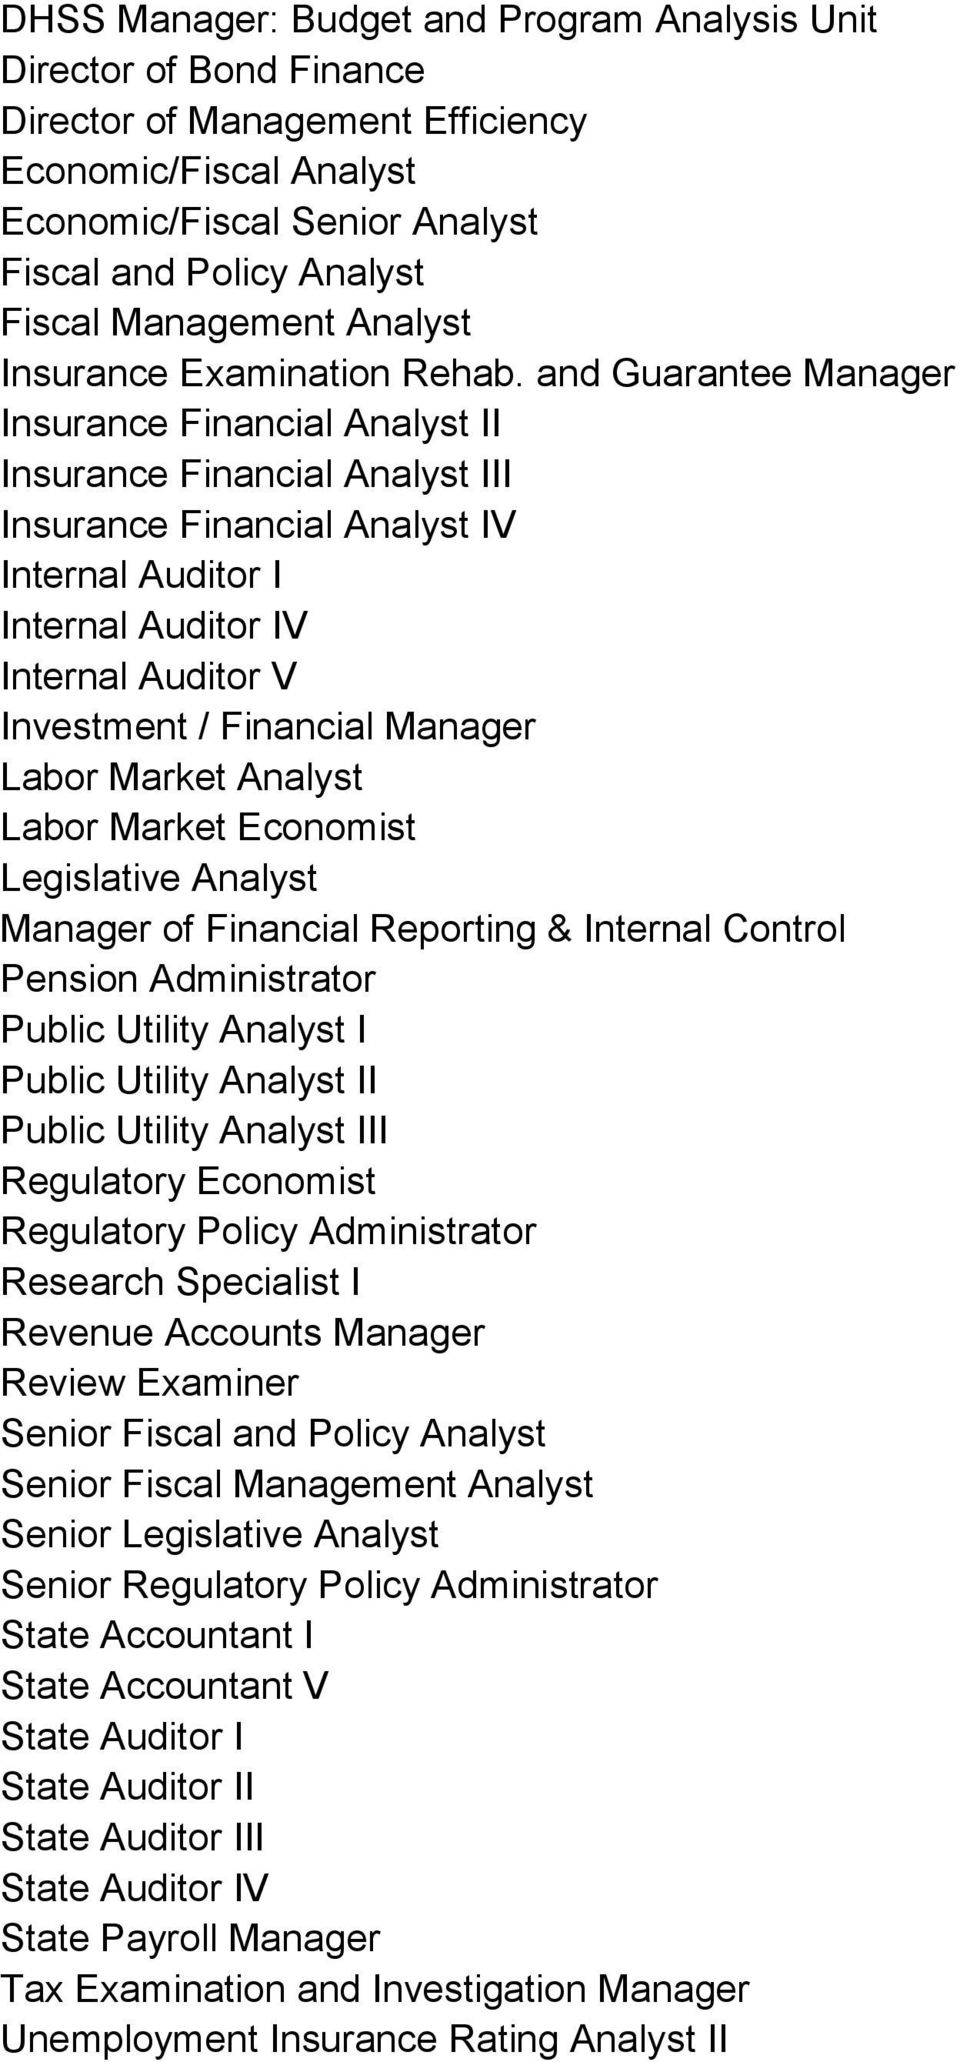 and Guarantee Manager Insurance Financial Analyst II Insurance Financial Analyst III Insurance Financial Analyst IV Internal Auditor I Internal Auditor IV Internal Auditor V Investment / Financial